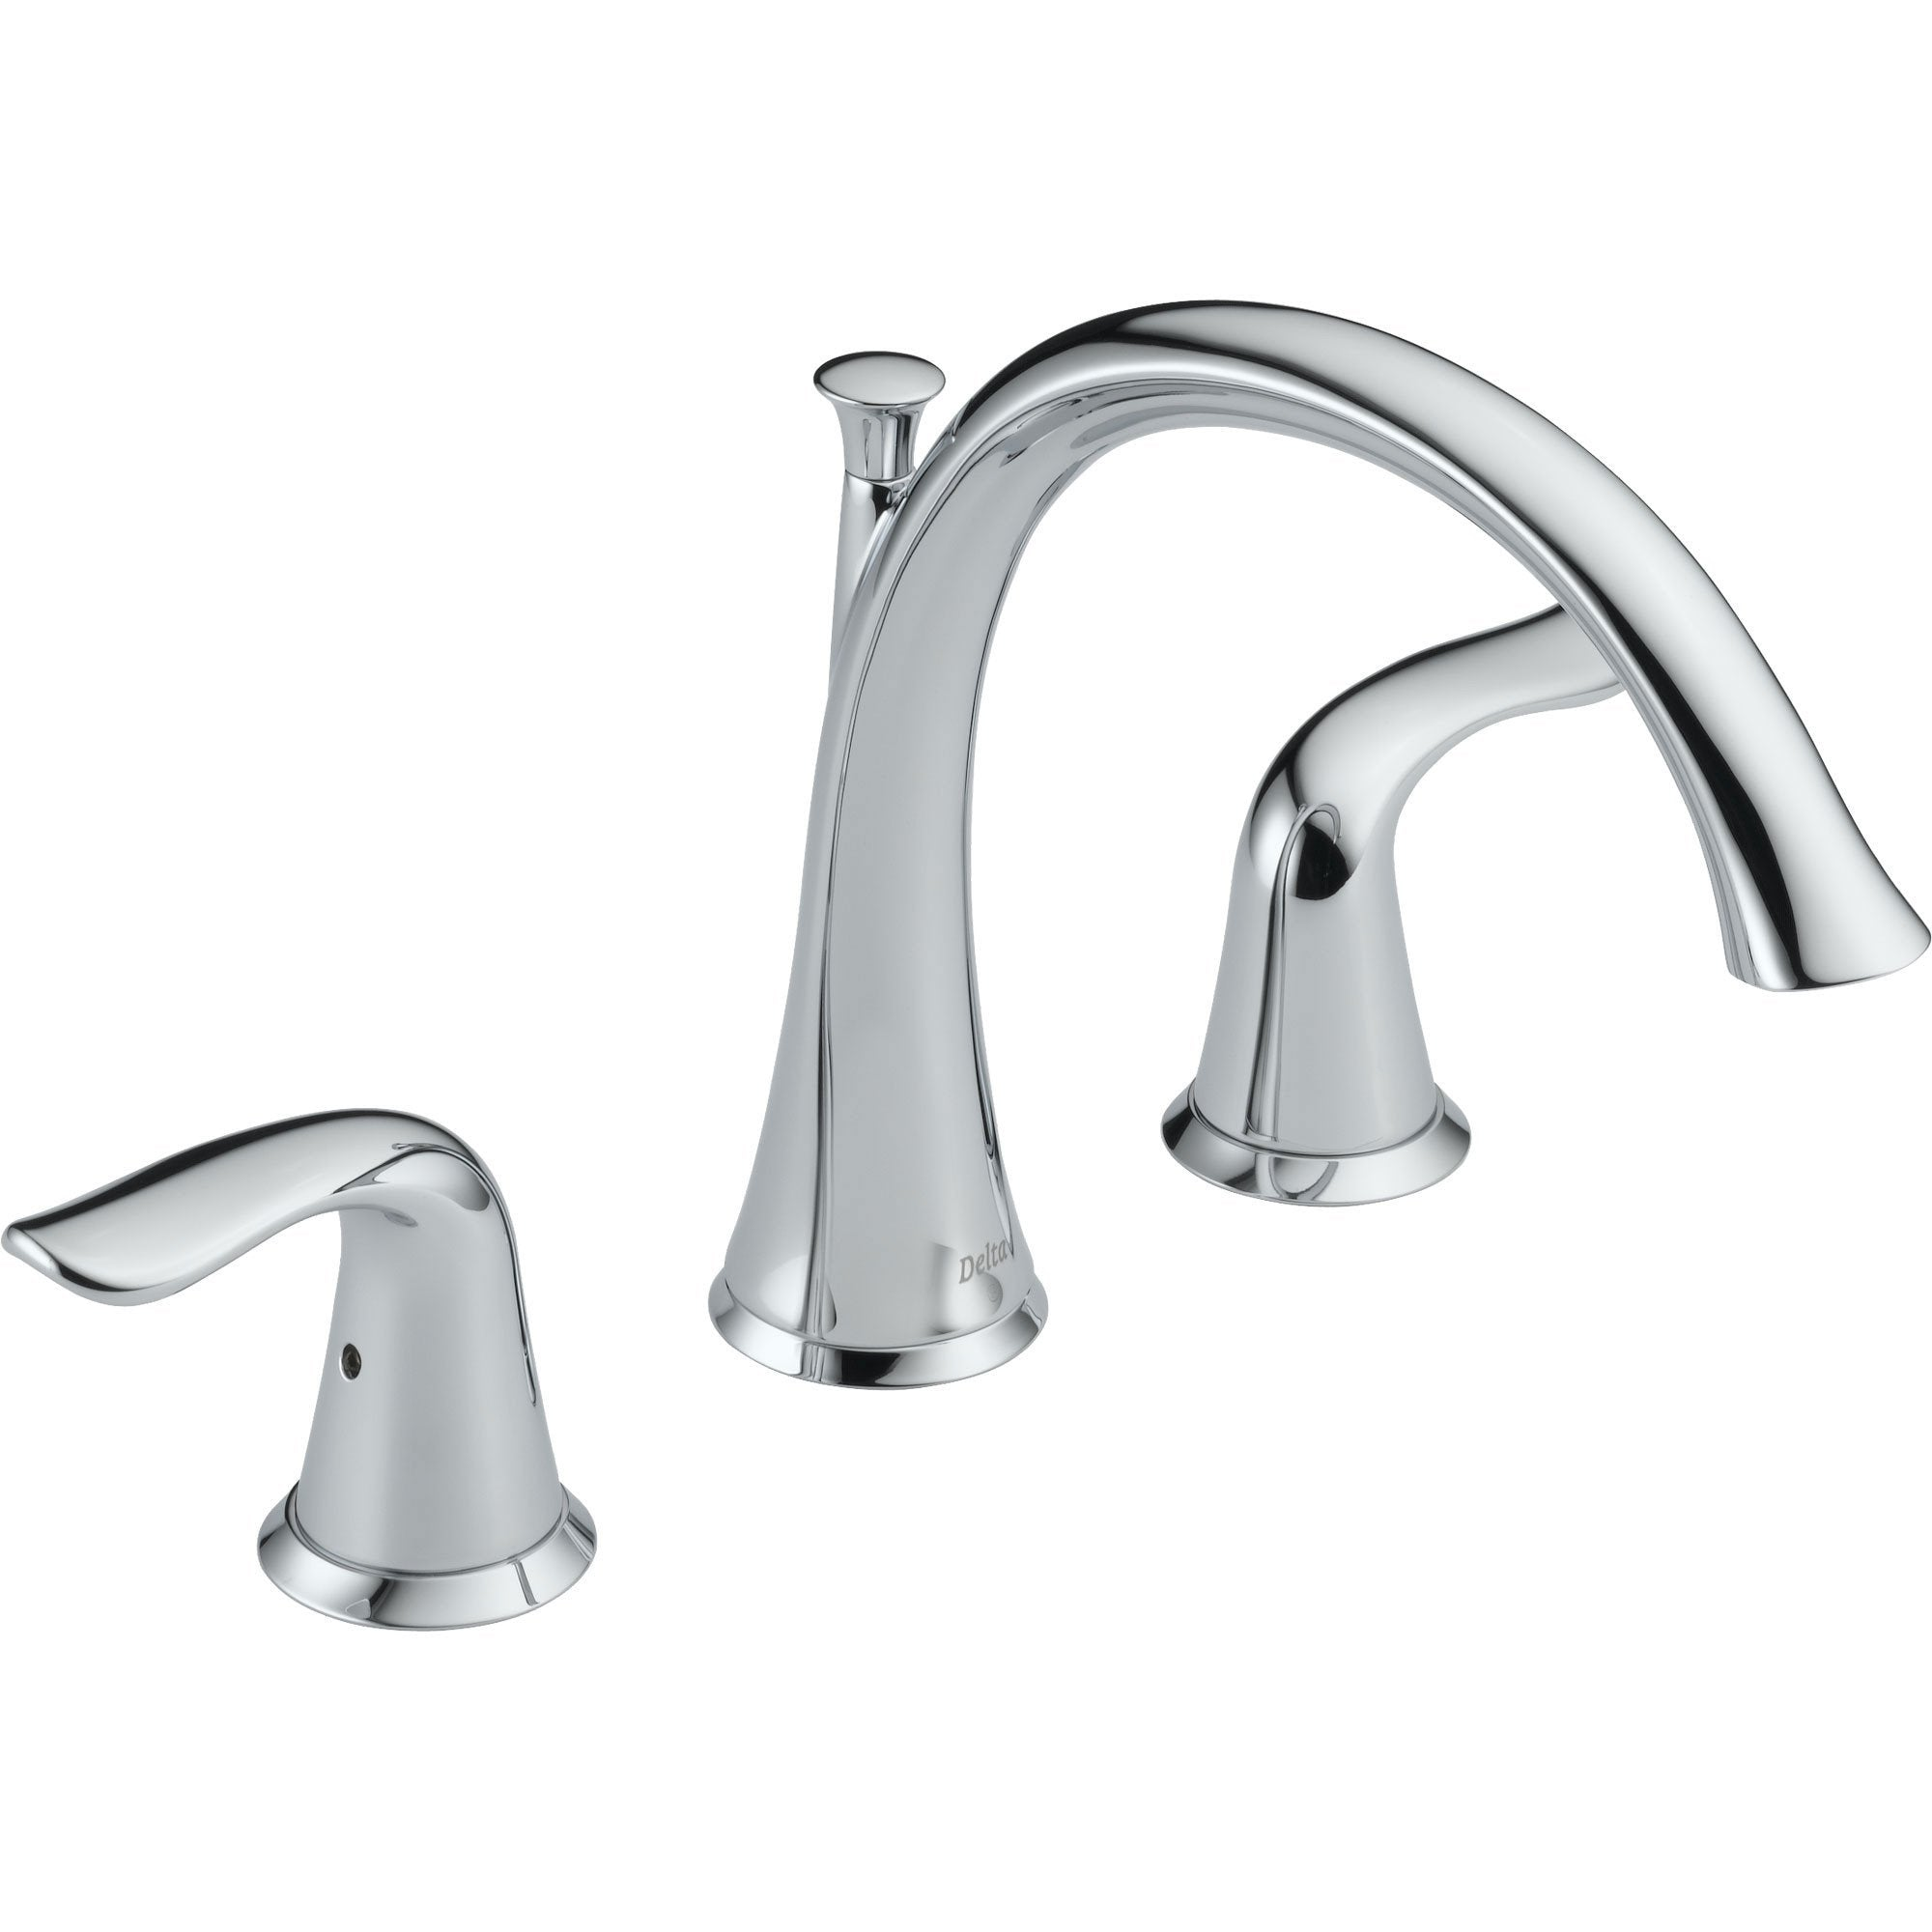 Delta Lahara Chrome 2-Handle Deck Mount Roman Tub Filler Faucet with Valve D896V